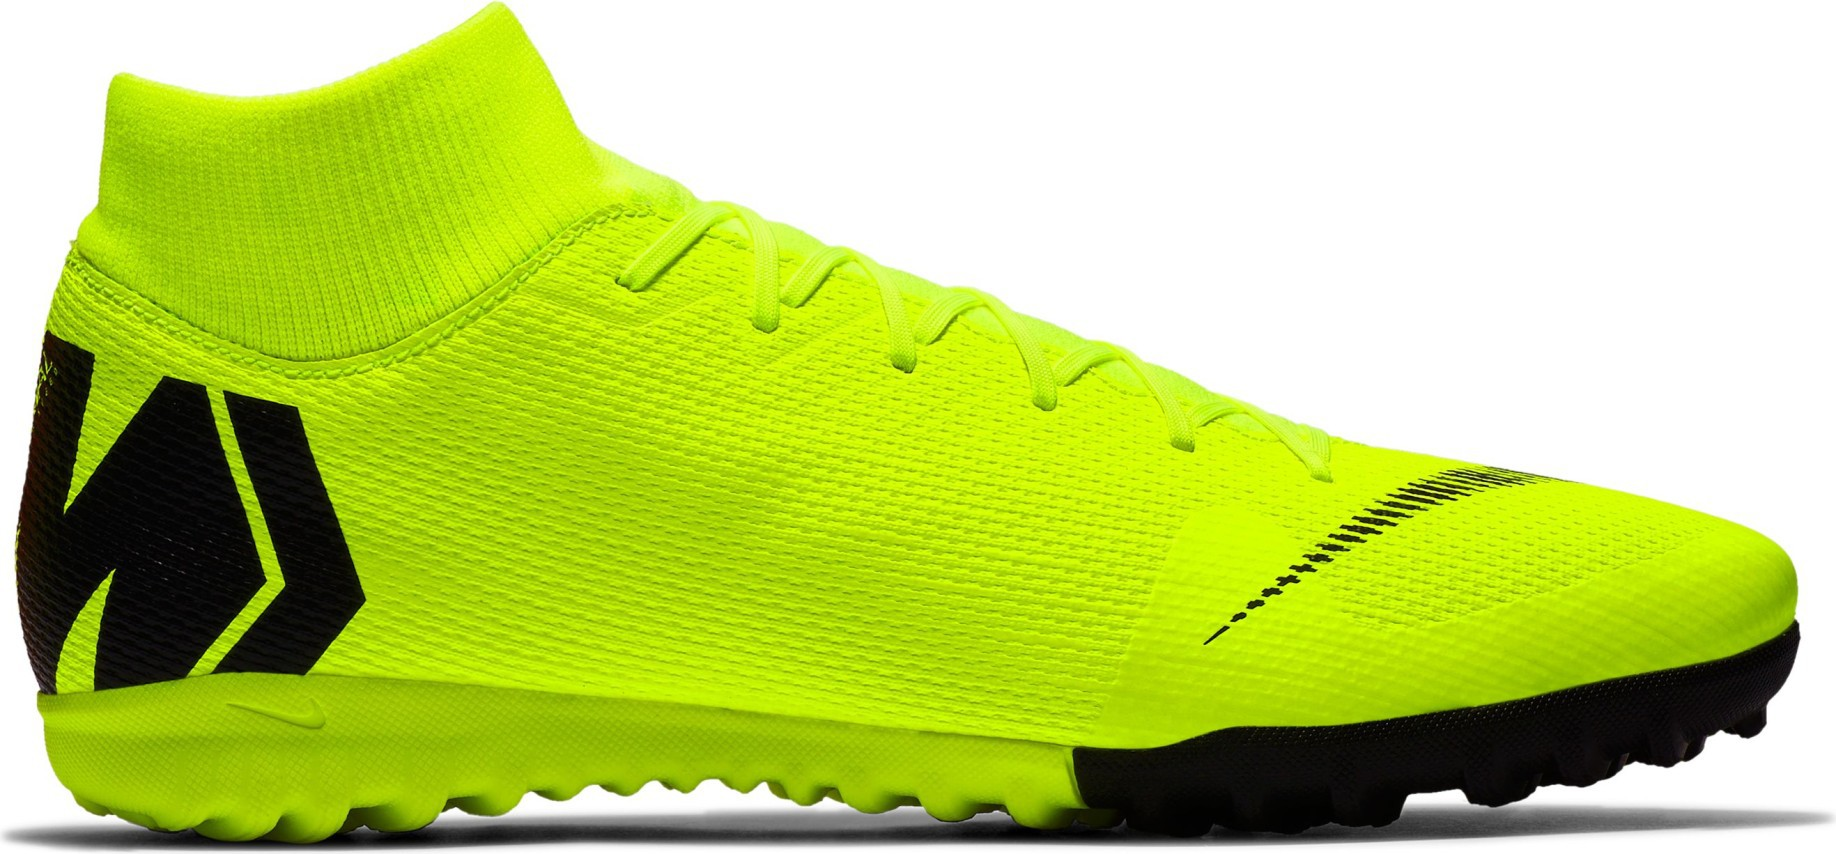 new concept dfe0f ccb69 Shoes Soccer Nike Mercurial SuperflyX Academy TF Always Forward Pack